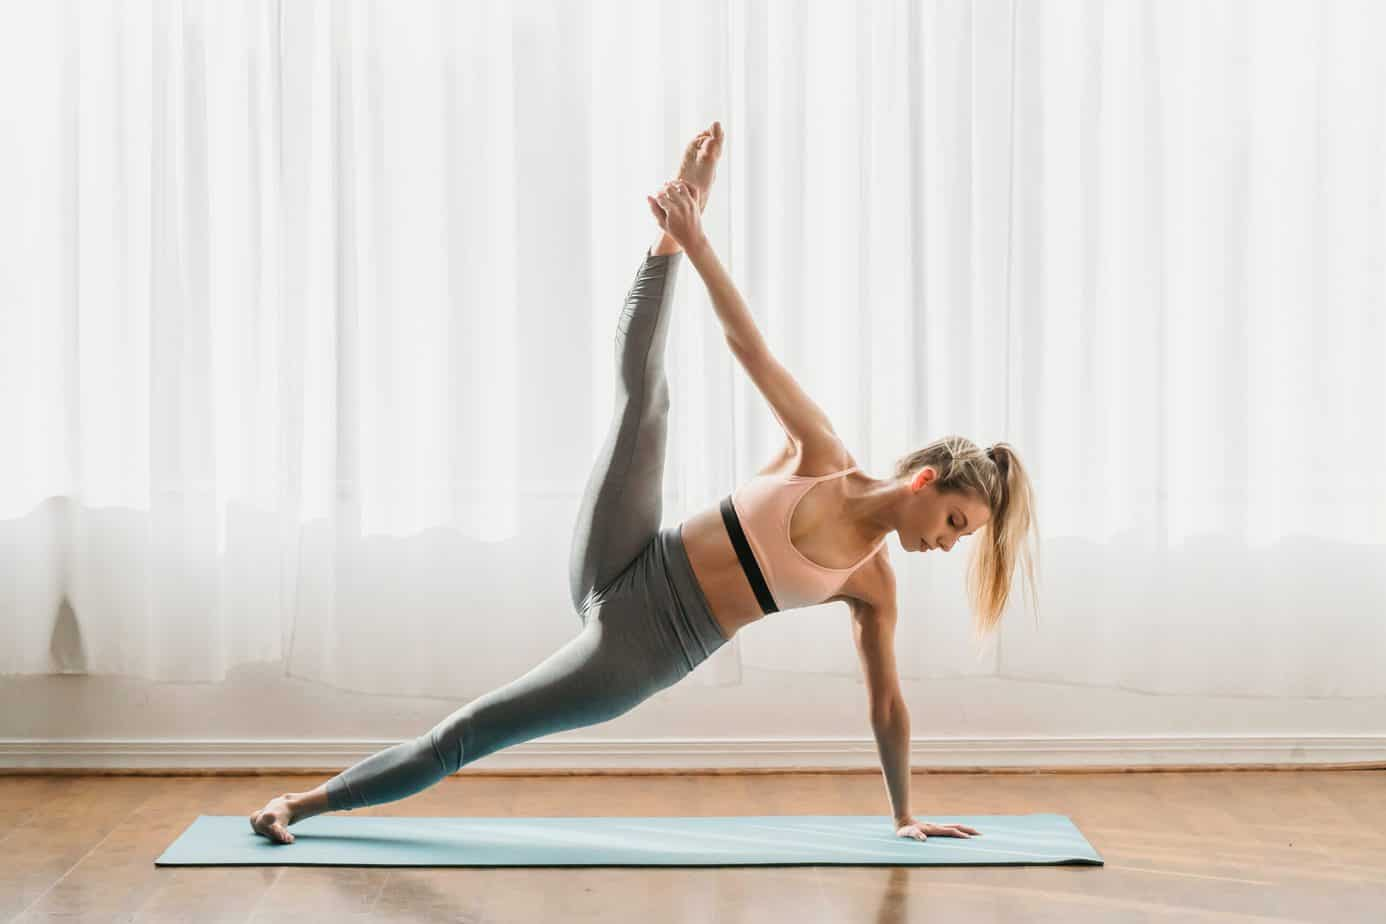 A woman wearing yoga leggings while stretching